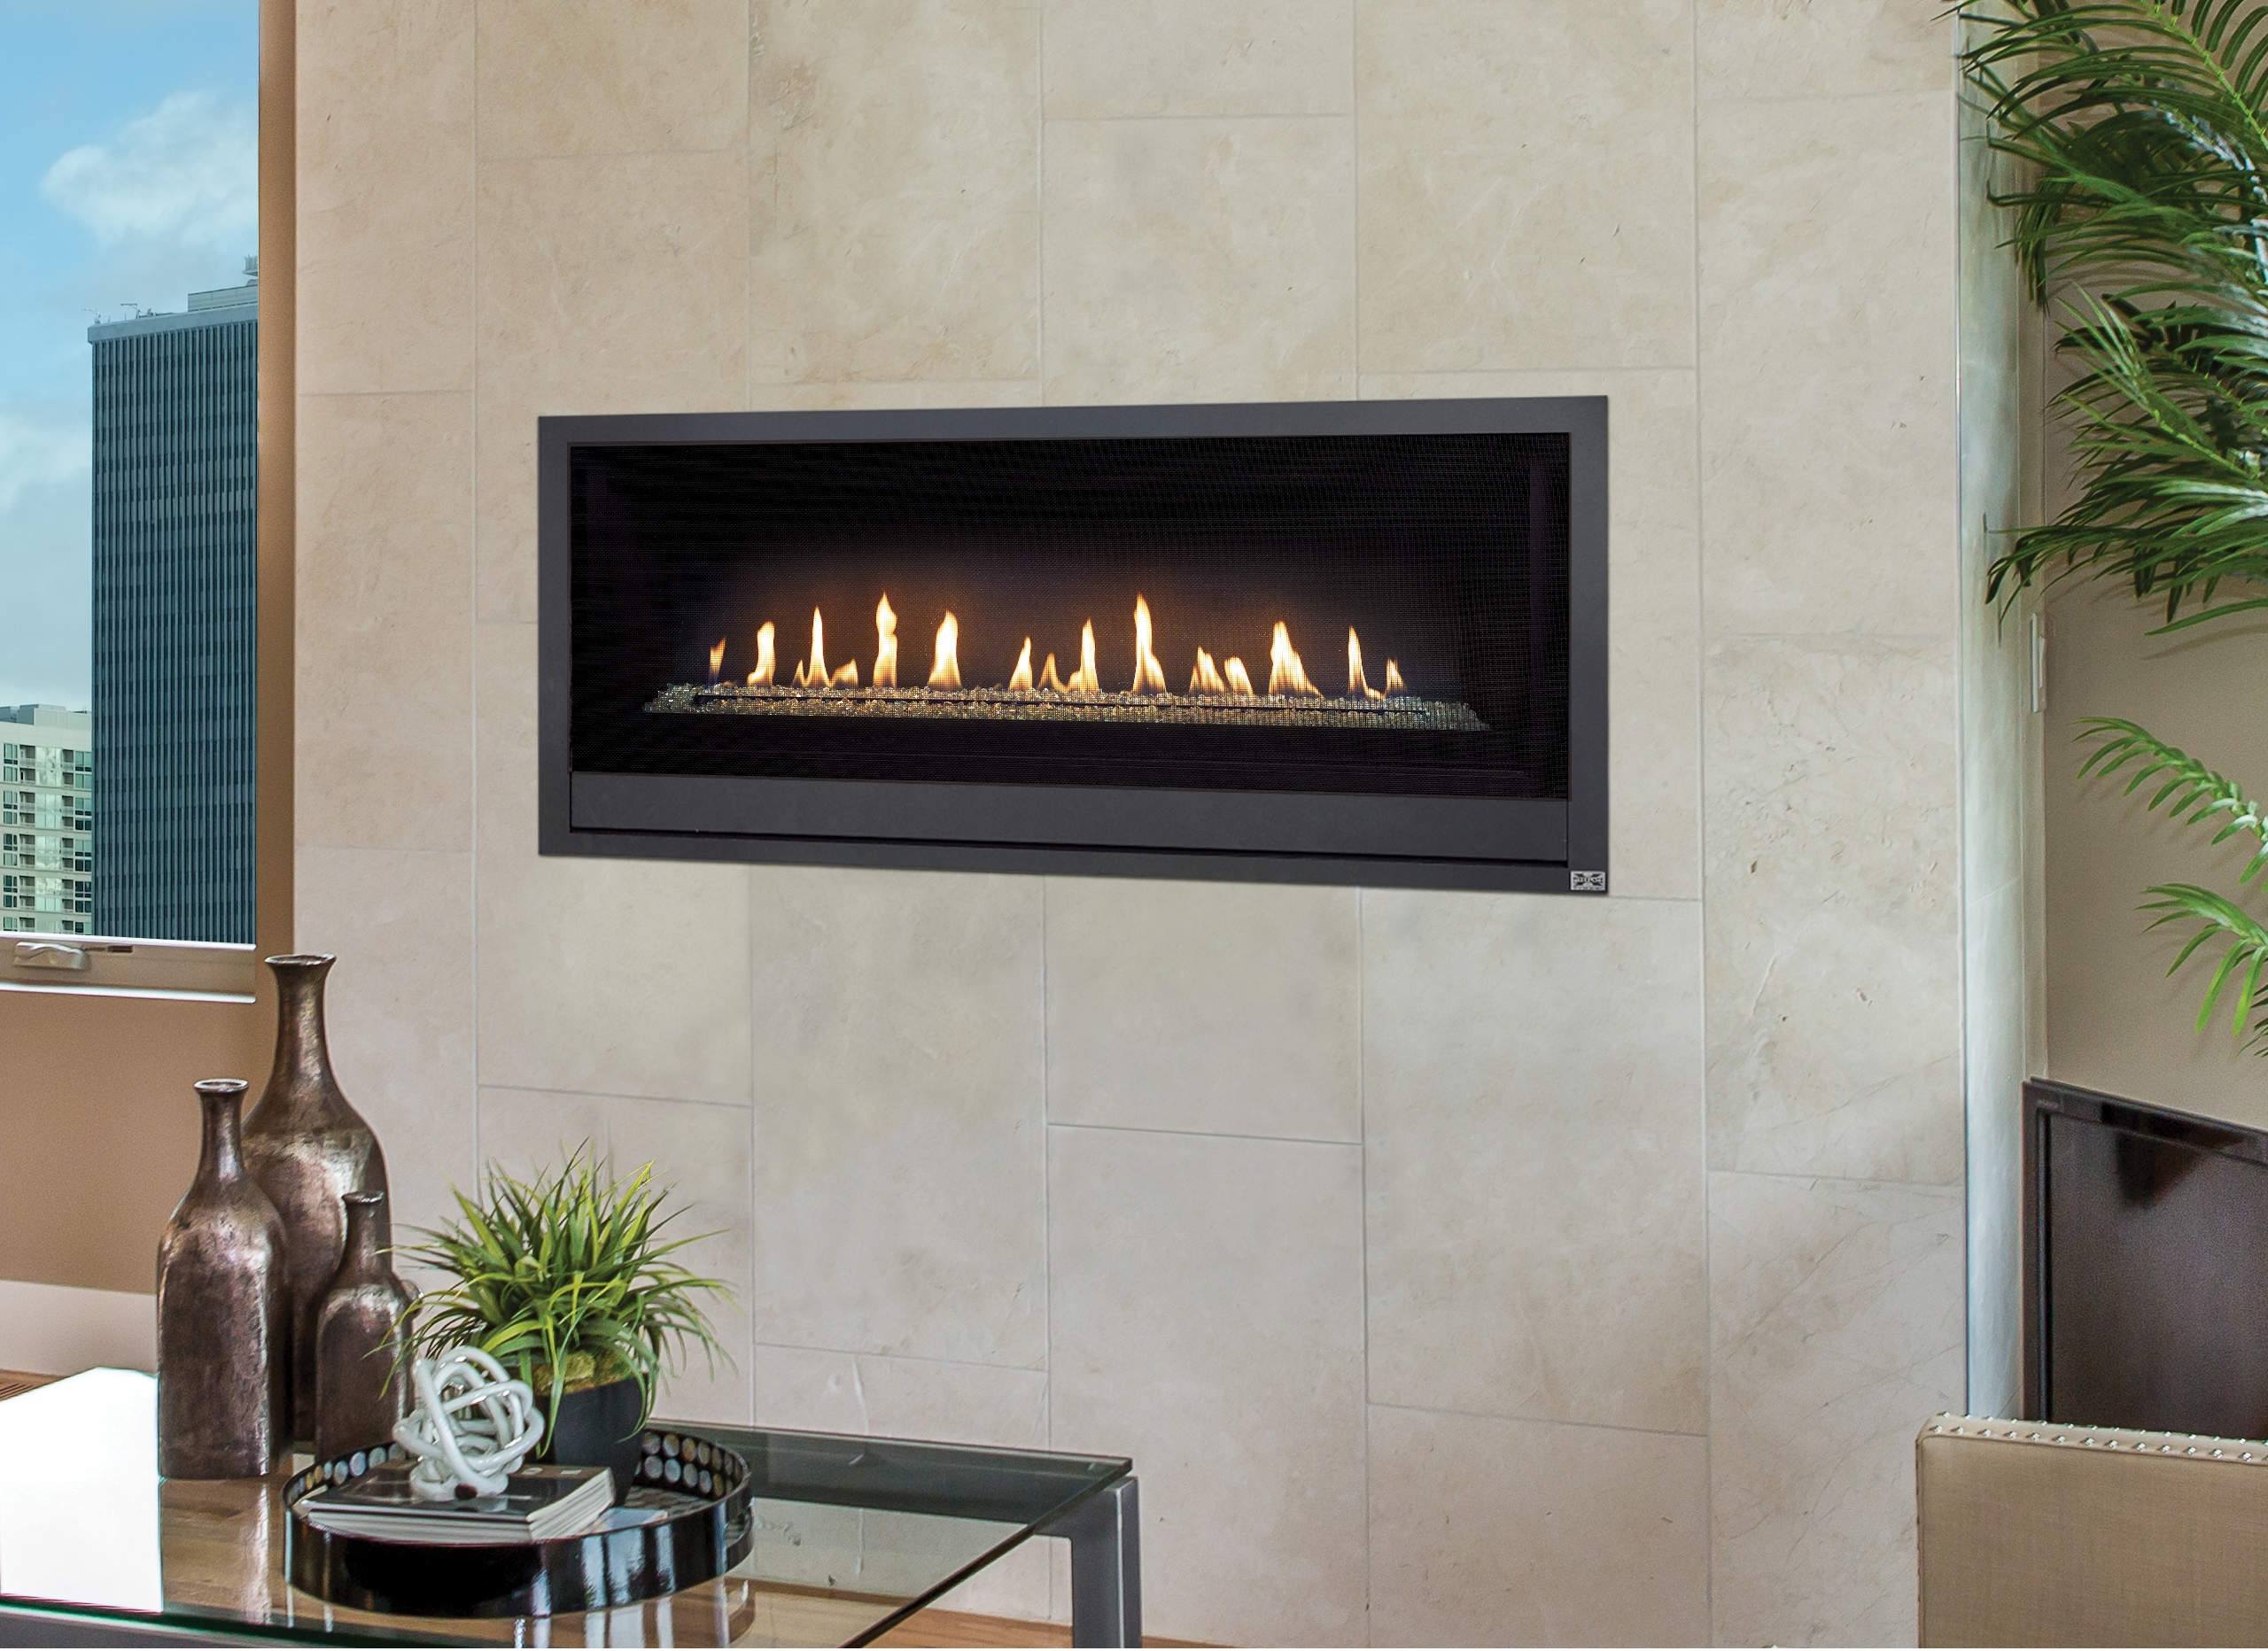 Image of a Fireplace Xtordinair ProBuilder 42 Gas Fireplace with a link to the product page.